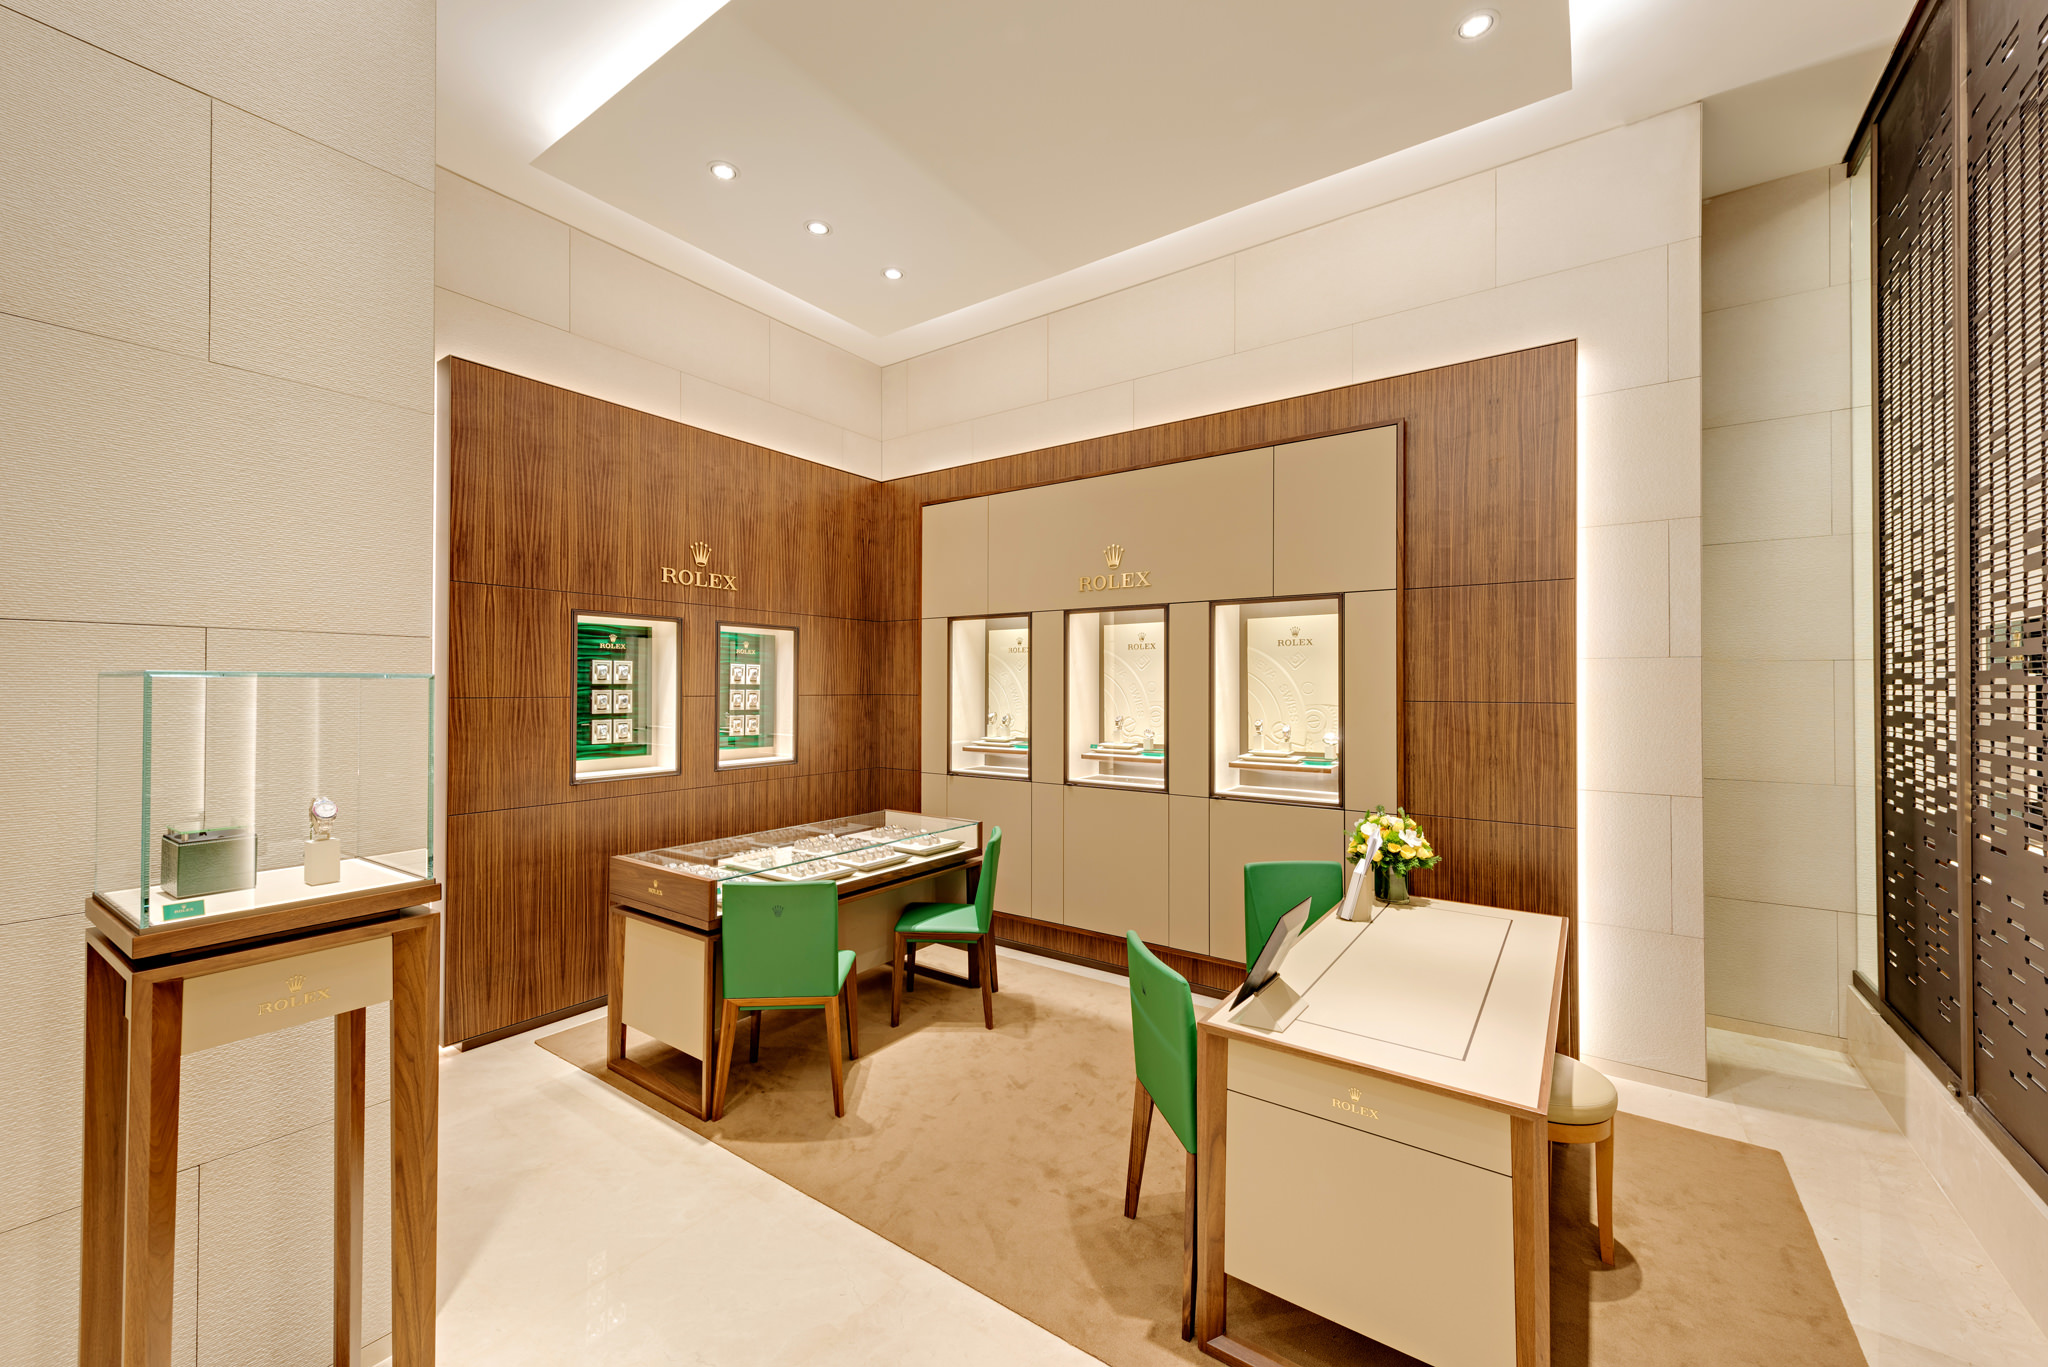 20161224 - Rolex - HCM - Commercial - Interior - Store - Retouch 0008.jpg